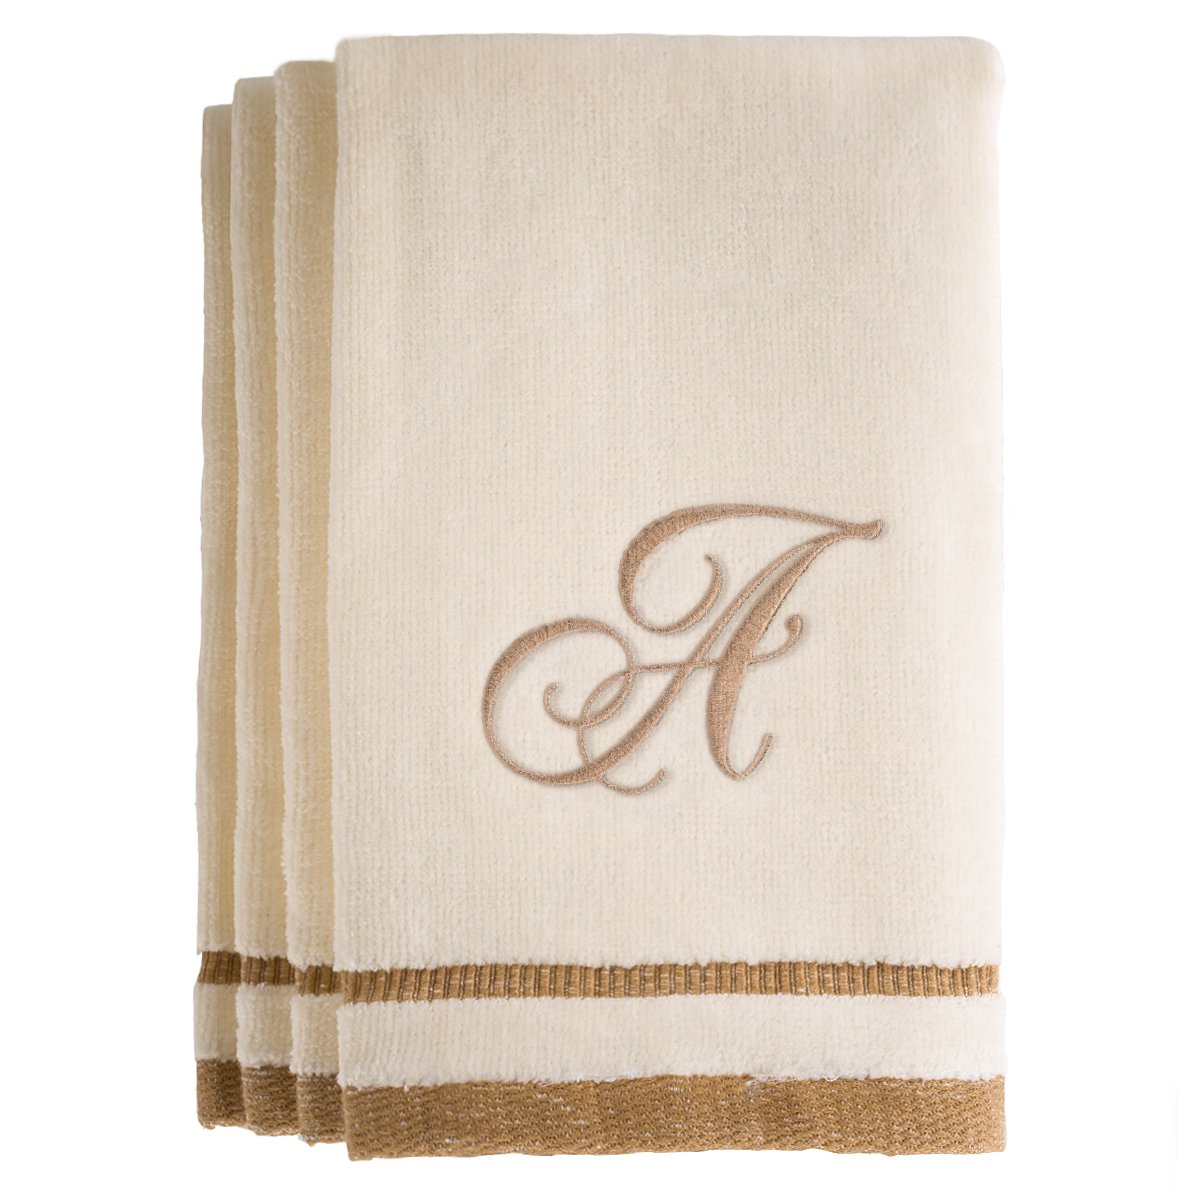 Superieur Monogrammed Gifts, Fingertip Towels, 11 X 18 Inches   Set Of 4  Decorative  Golden Brown Embroidered Towel   Extra Absorbent 100% Cotton  Personalized  Gift  ...